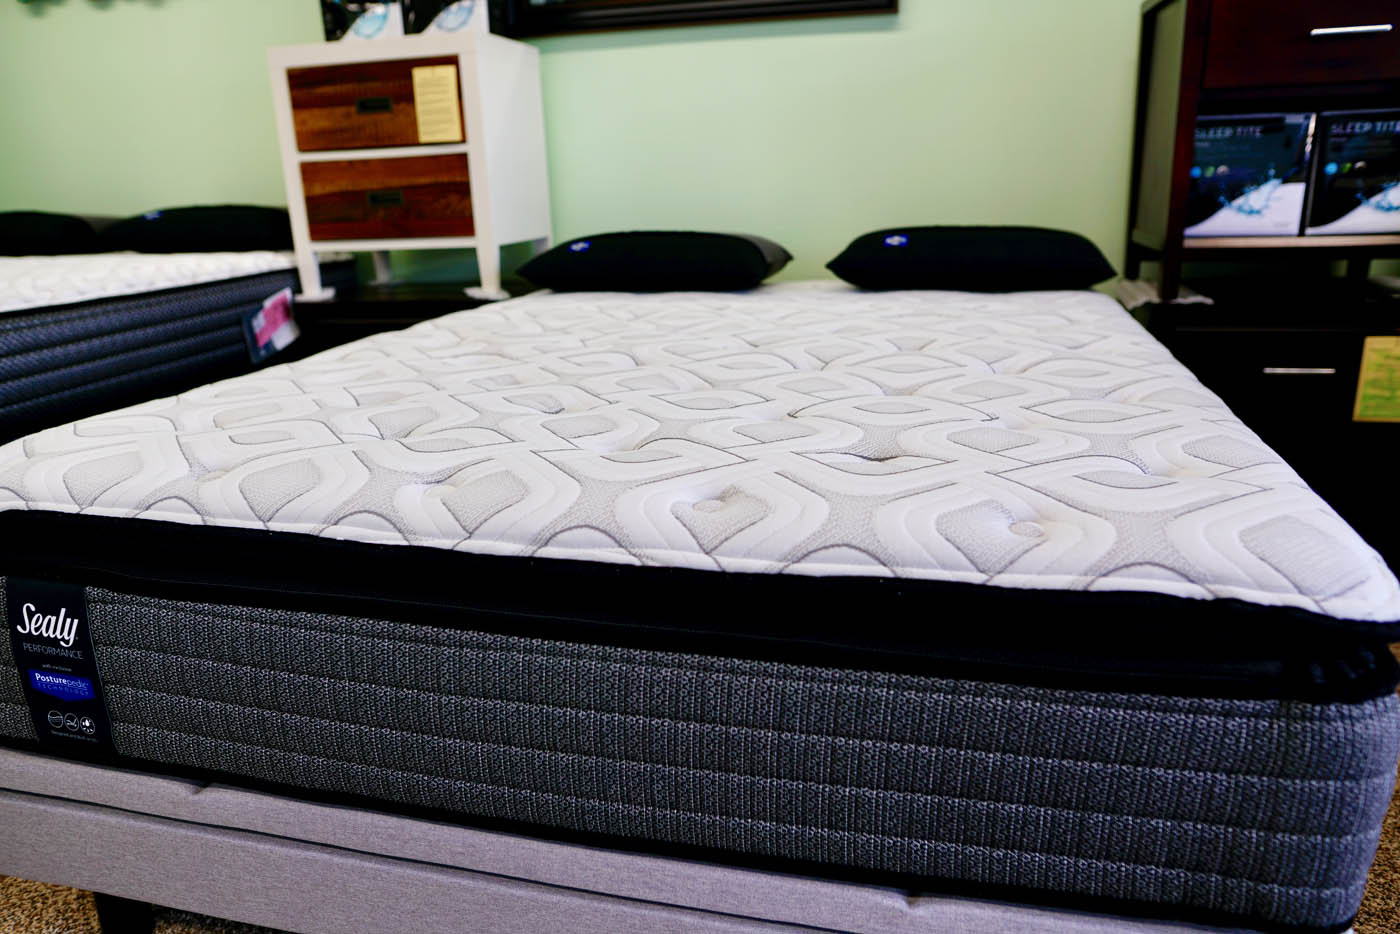 sealy traditional cushion firm pillow top